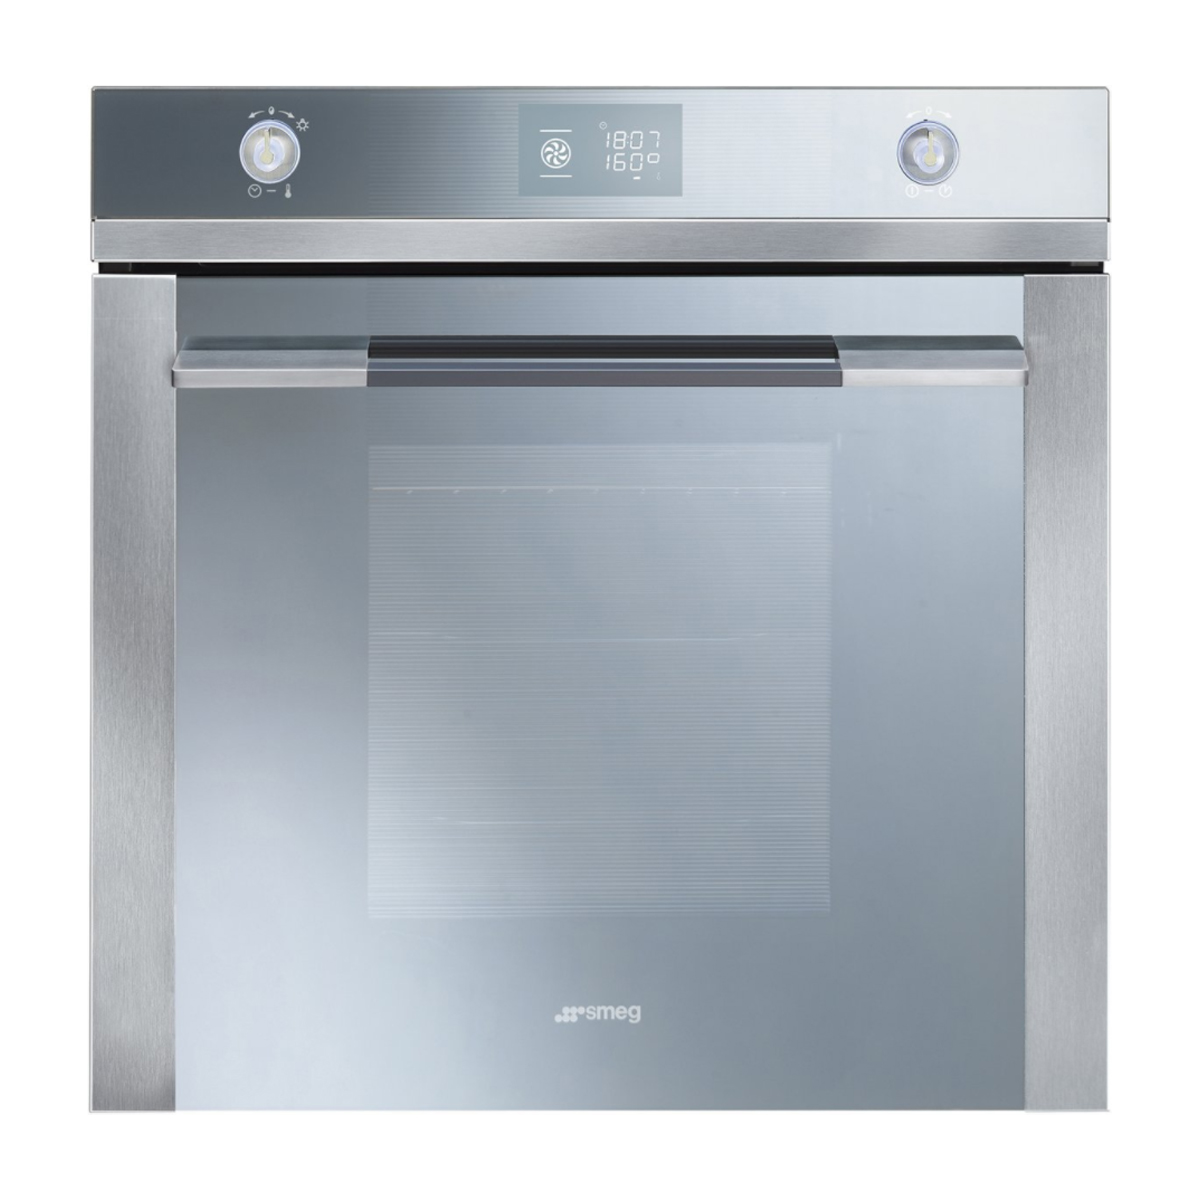 Smeg SFPA6125 Linear Aesthetic Pyrolytic Built-In Oven